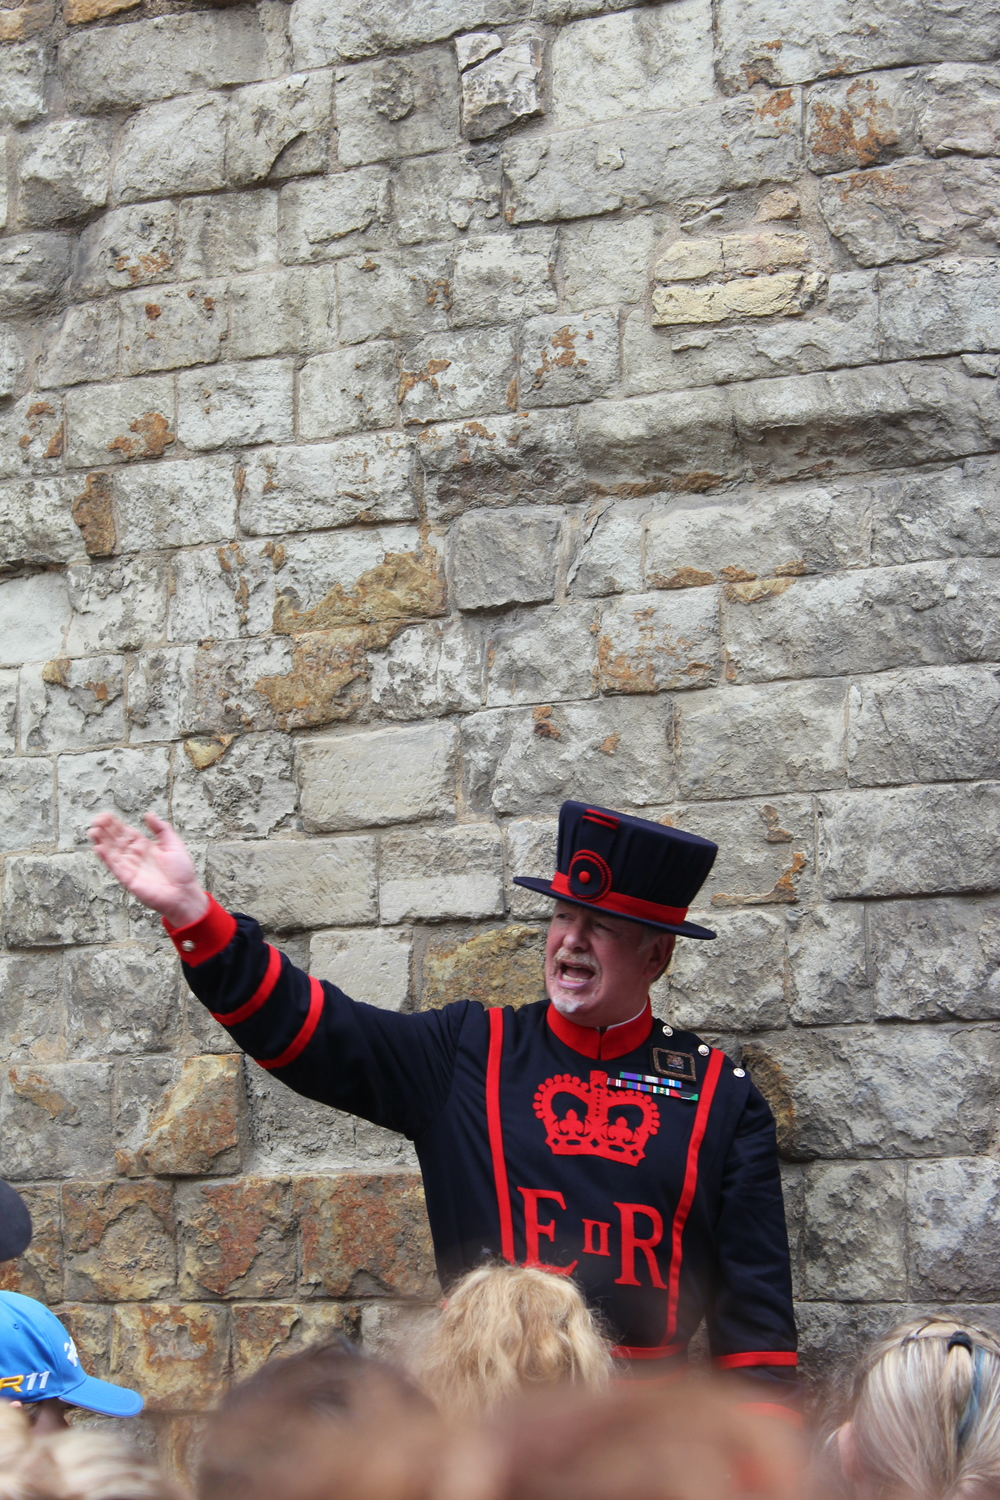 Our Yeoman Warder tour guide